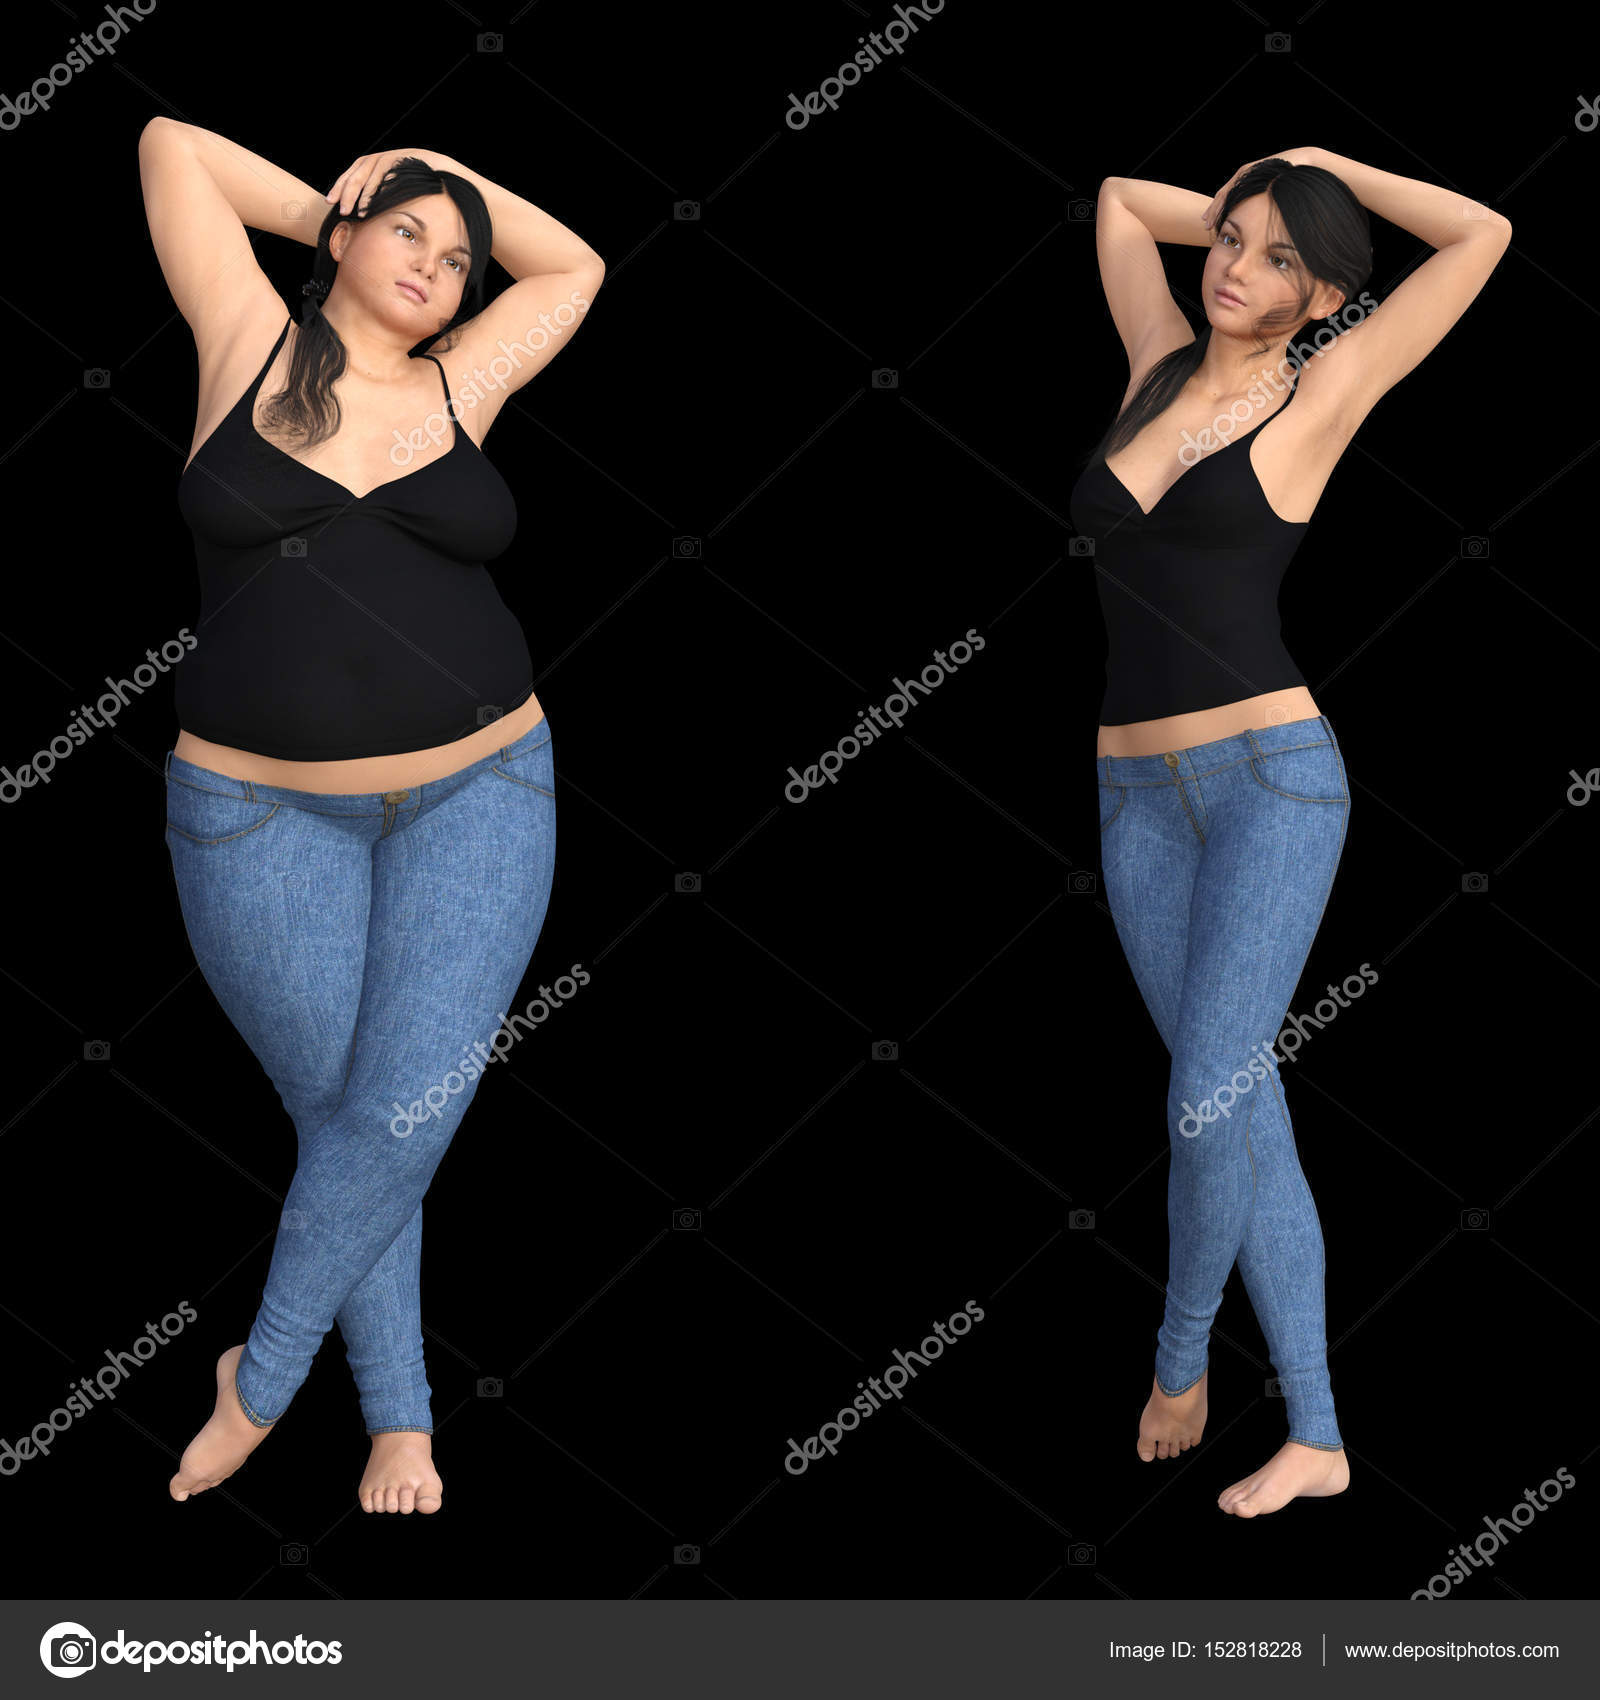 Fat Overweight Obese Female Vs Slim Fit Healthy Diet Stock Photo C Design36 152818228 How many fat women would date a fit guy? fat overweight obese female vs slim fit healthy diet stock photo c design36 152818228